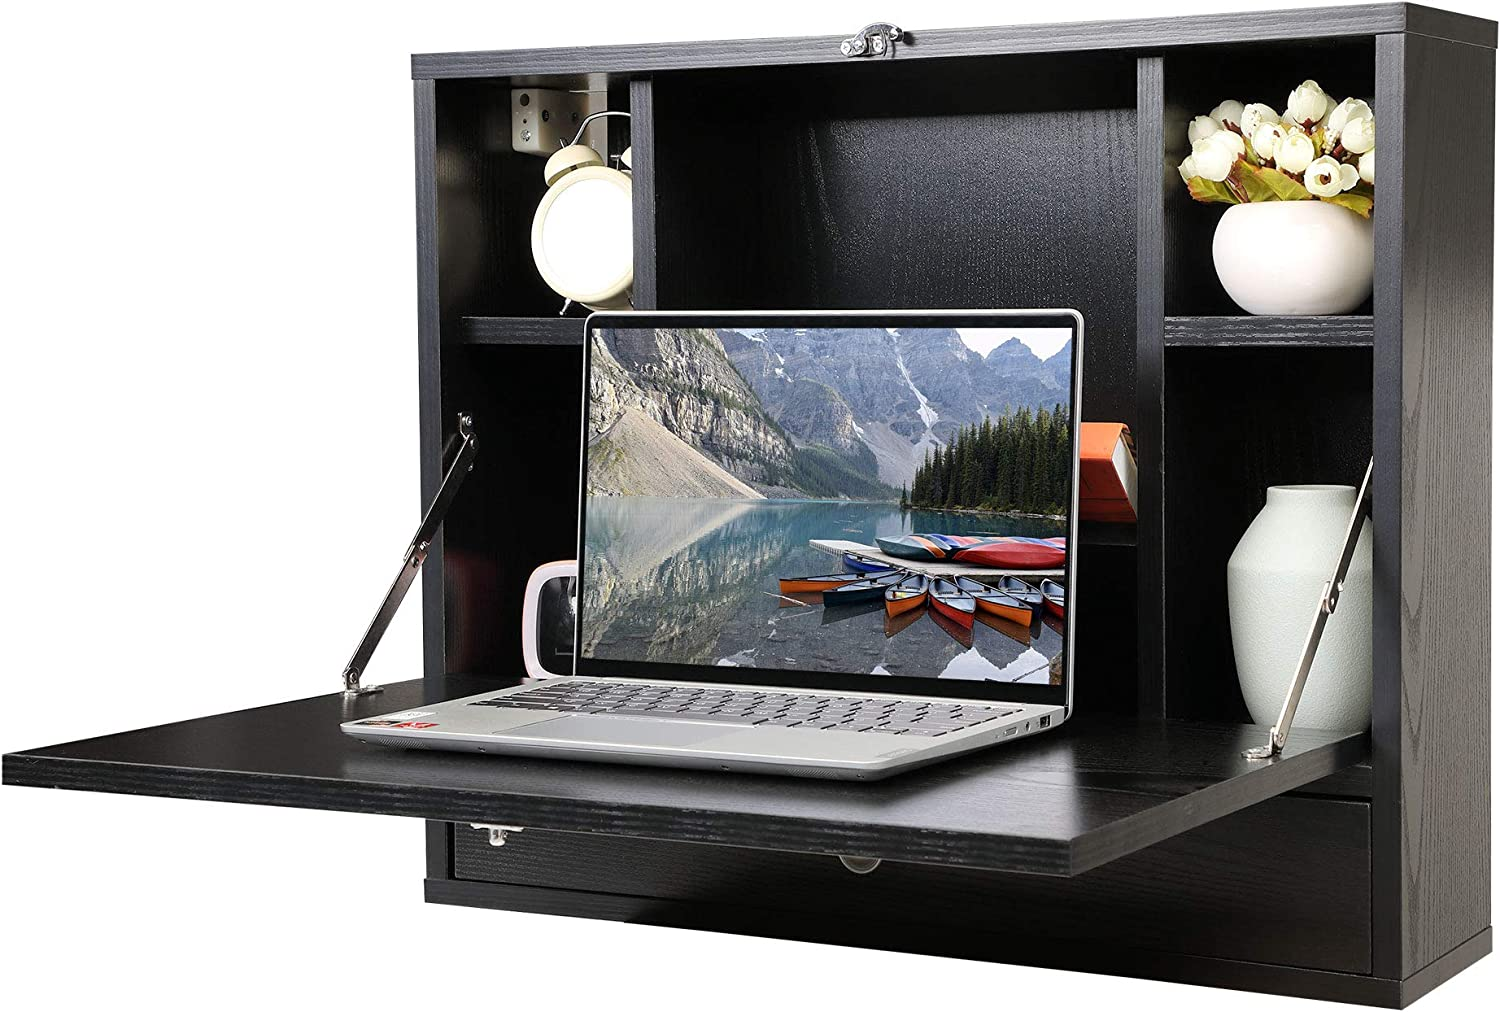 JAXPETY Wooden Wall-Mounted Space-Saving Desk, Fold Out Computer Laptop Desk with Storage Bookcase & Drawer, Convertible Writing Desk for Home Office, Black